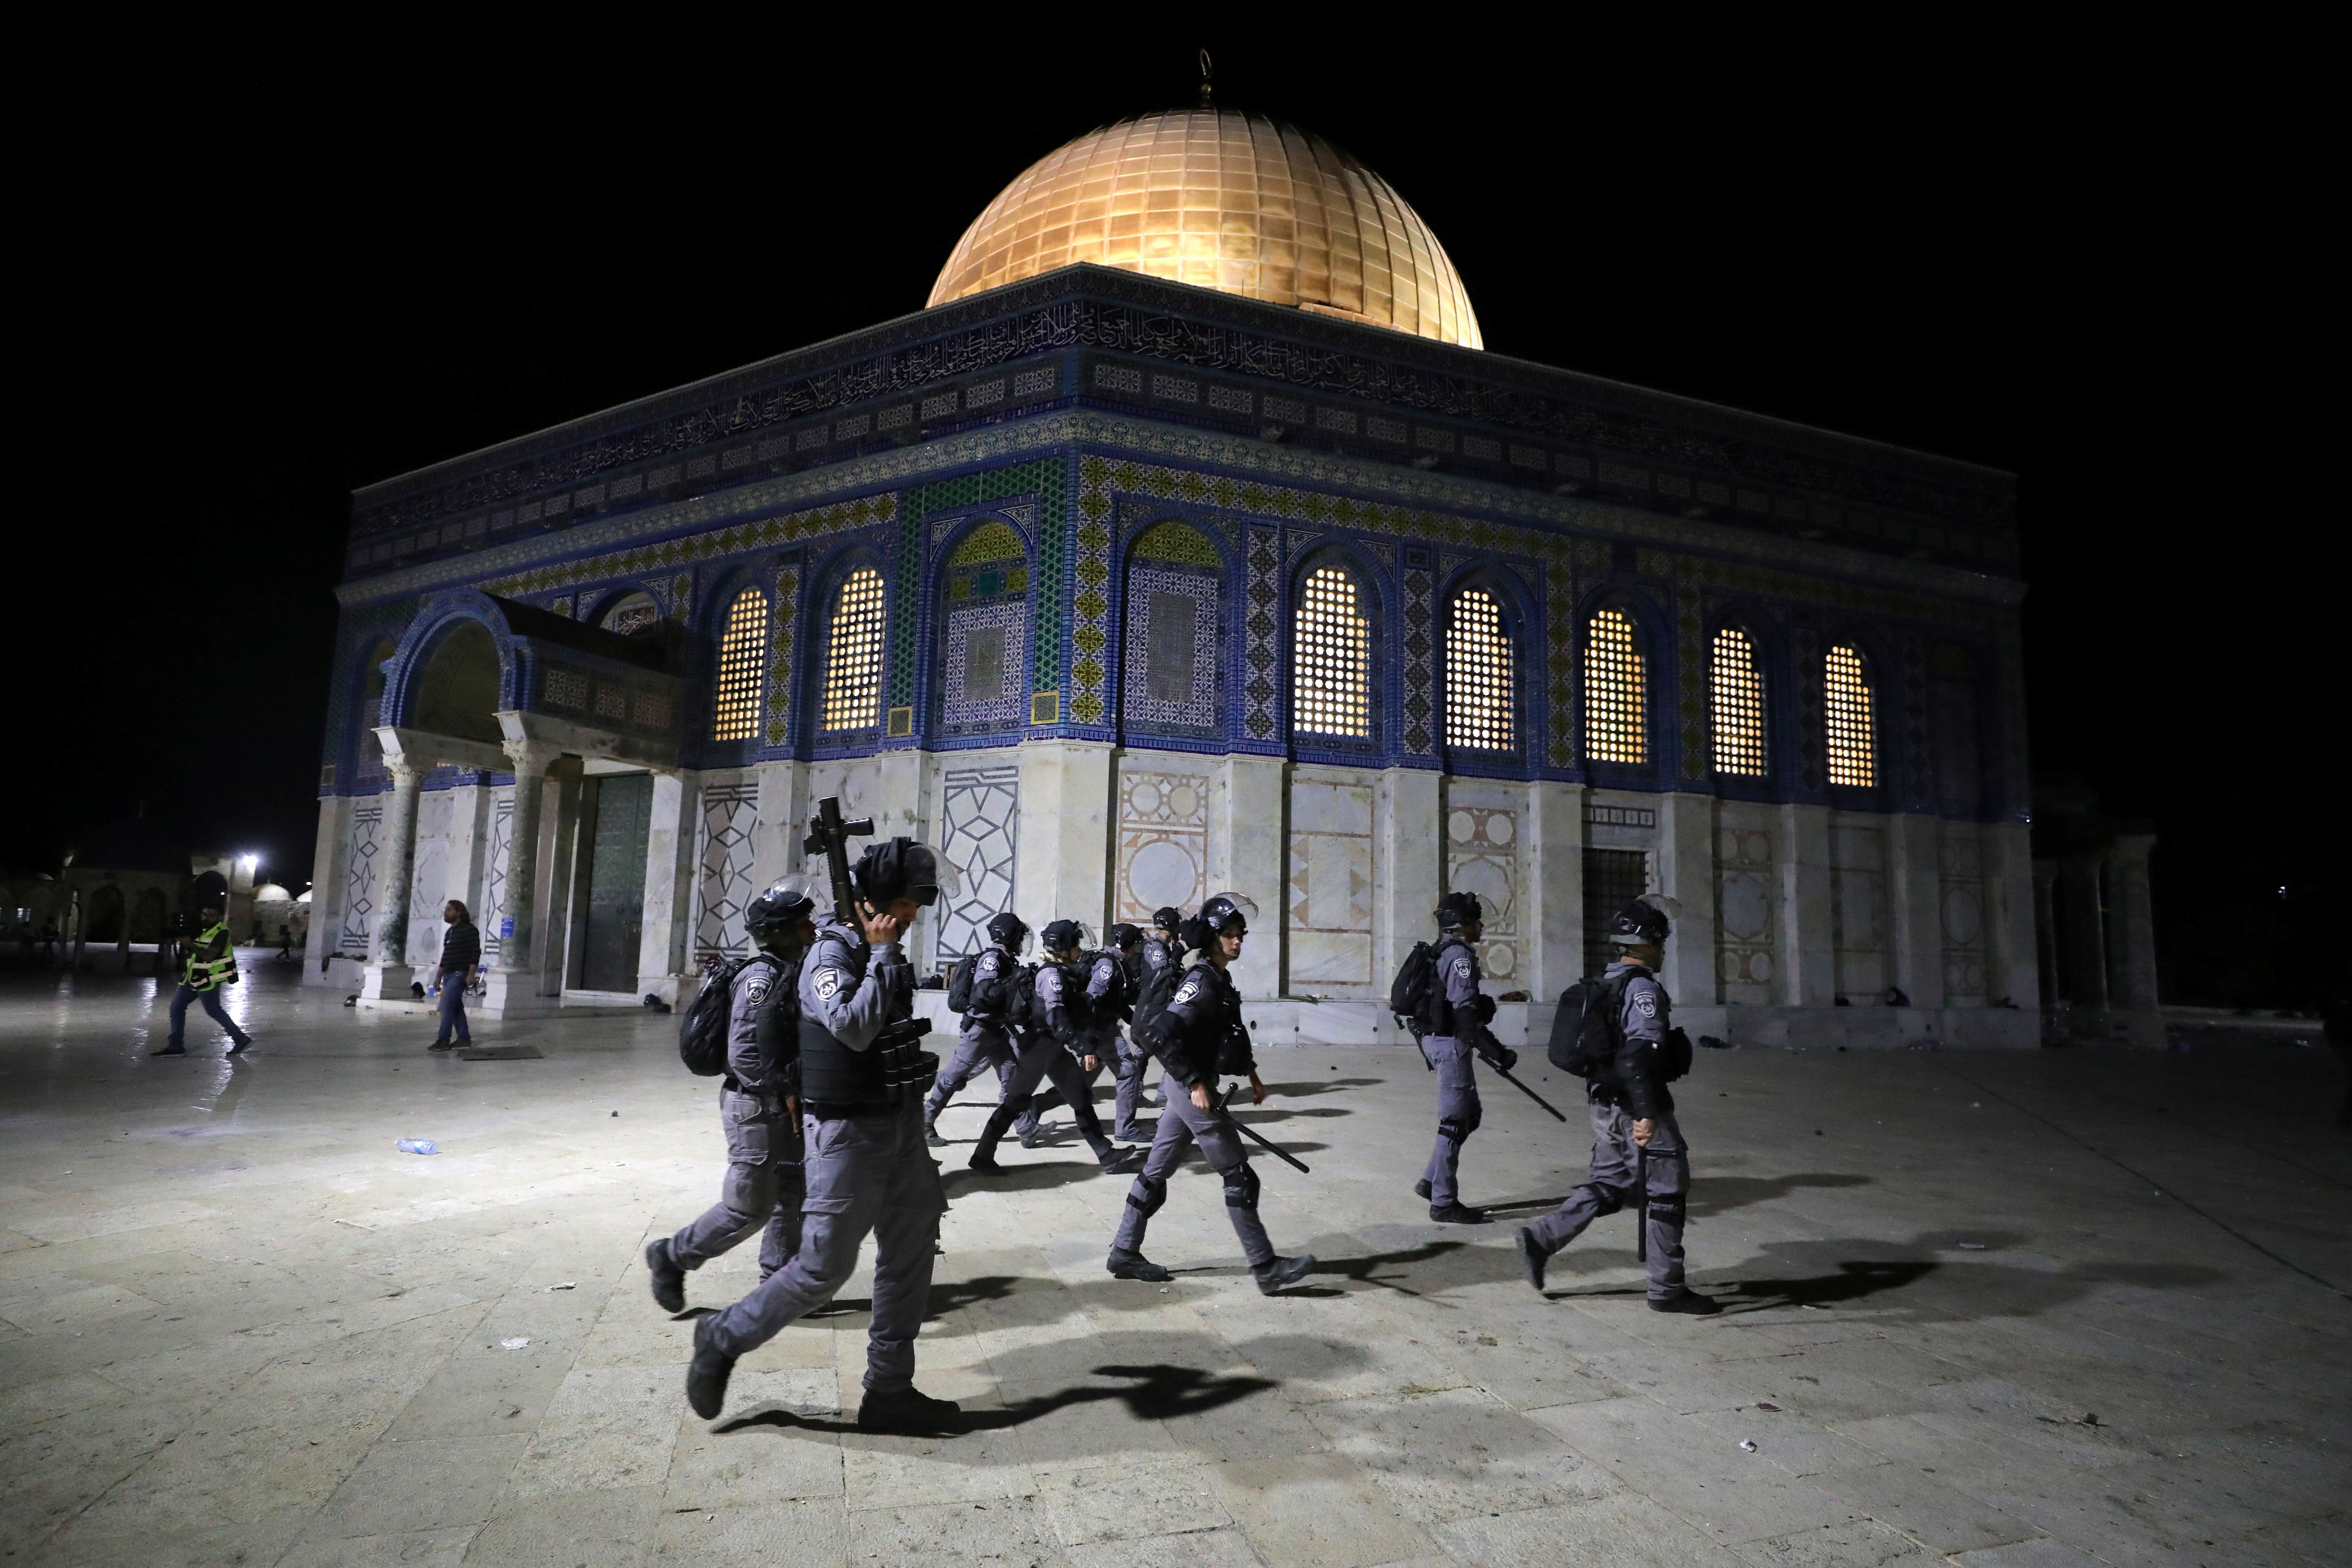 Israeli police walk near the Dome of the Rock during clashes with Palestinians at a compound known to Muslims as Noble Sanctuary and to Jews as Temple Mount, amid tension over the possible eviction of several Palestinian families from homes on land claimed by Jewish settlers in the Sheikh Jarrah neighbourhood, in Jerusalem's Old City, May 7, 2021. REUTERS/Ammar Awad